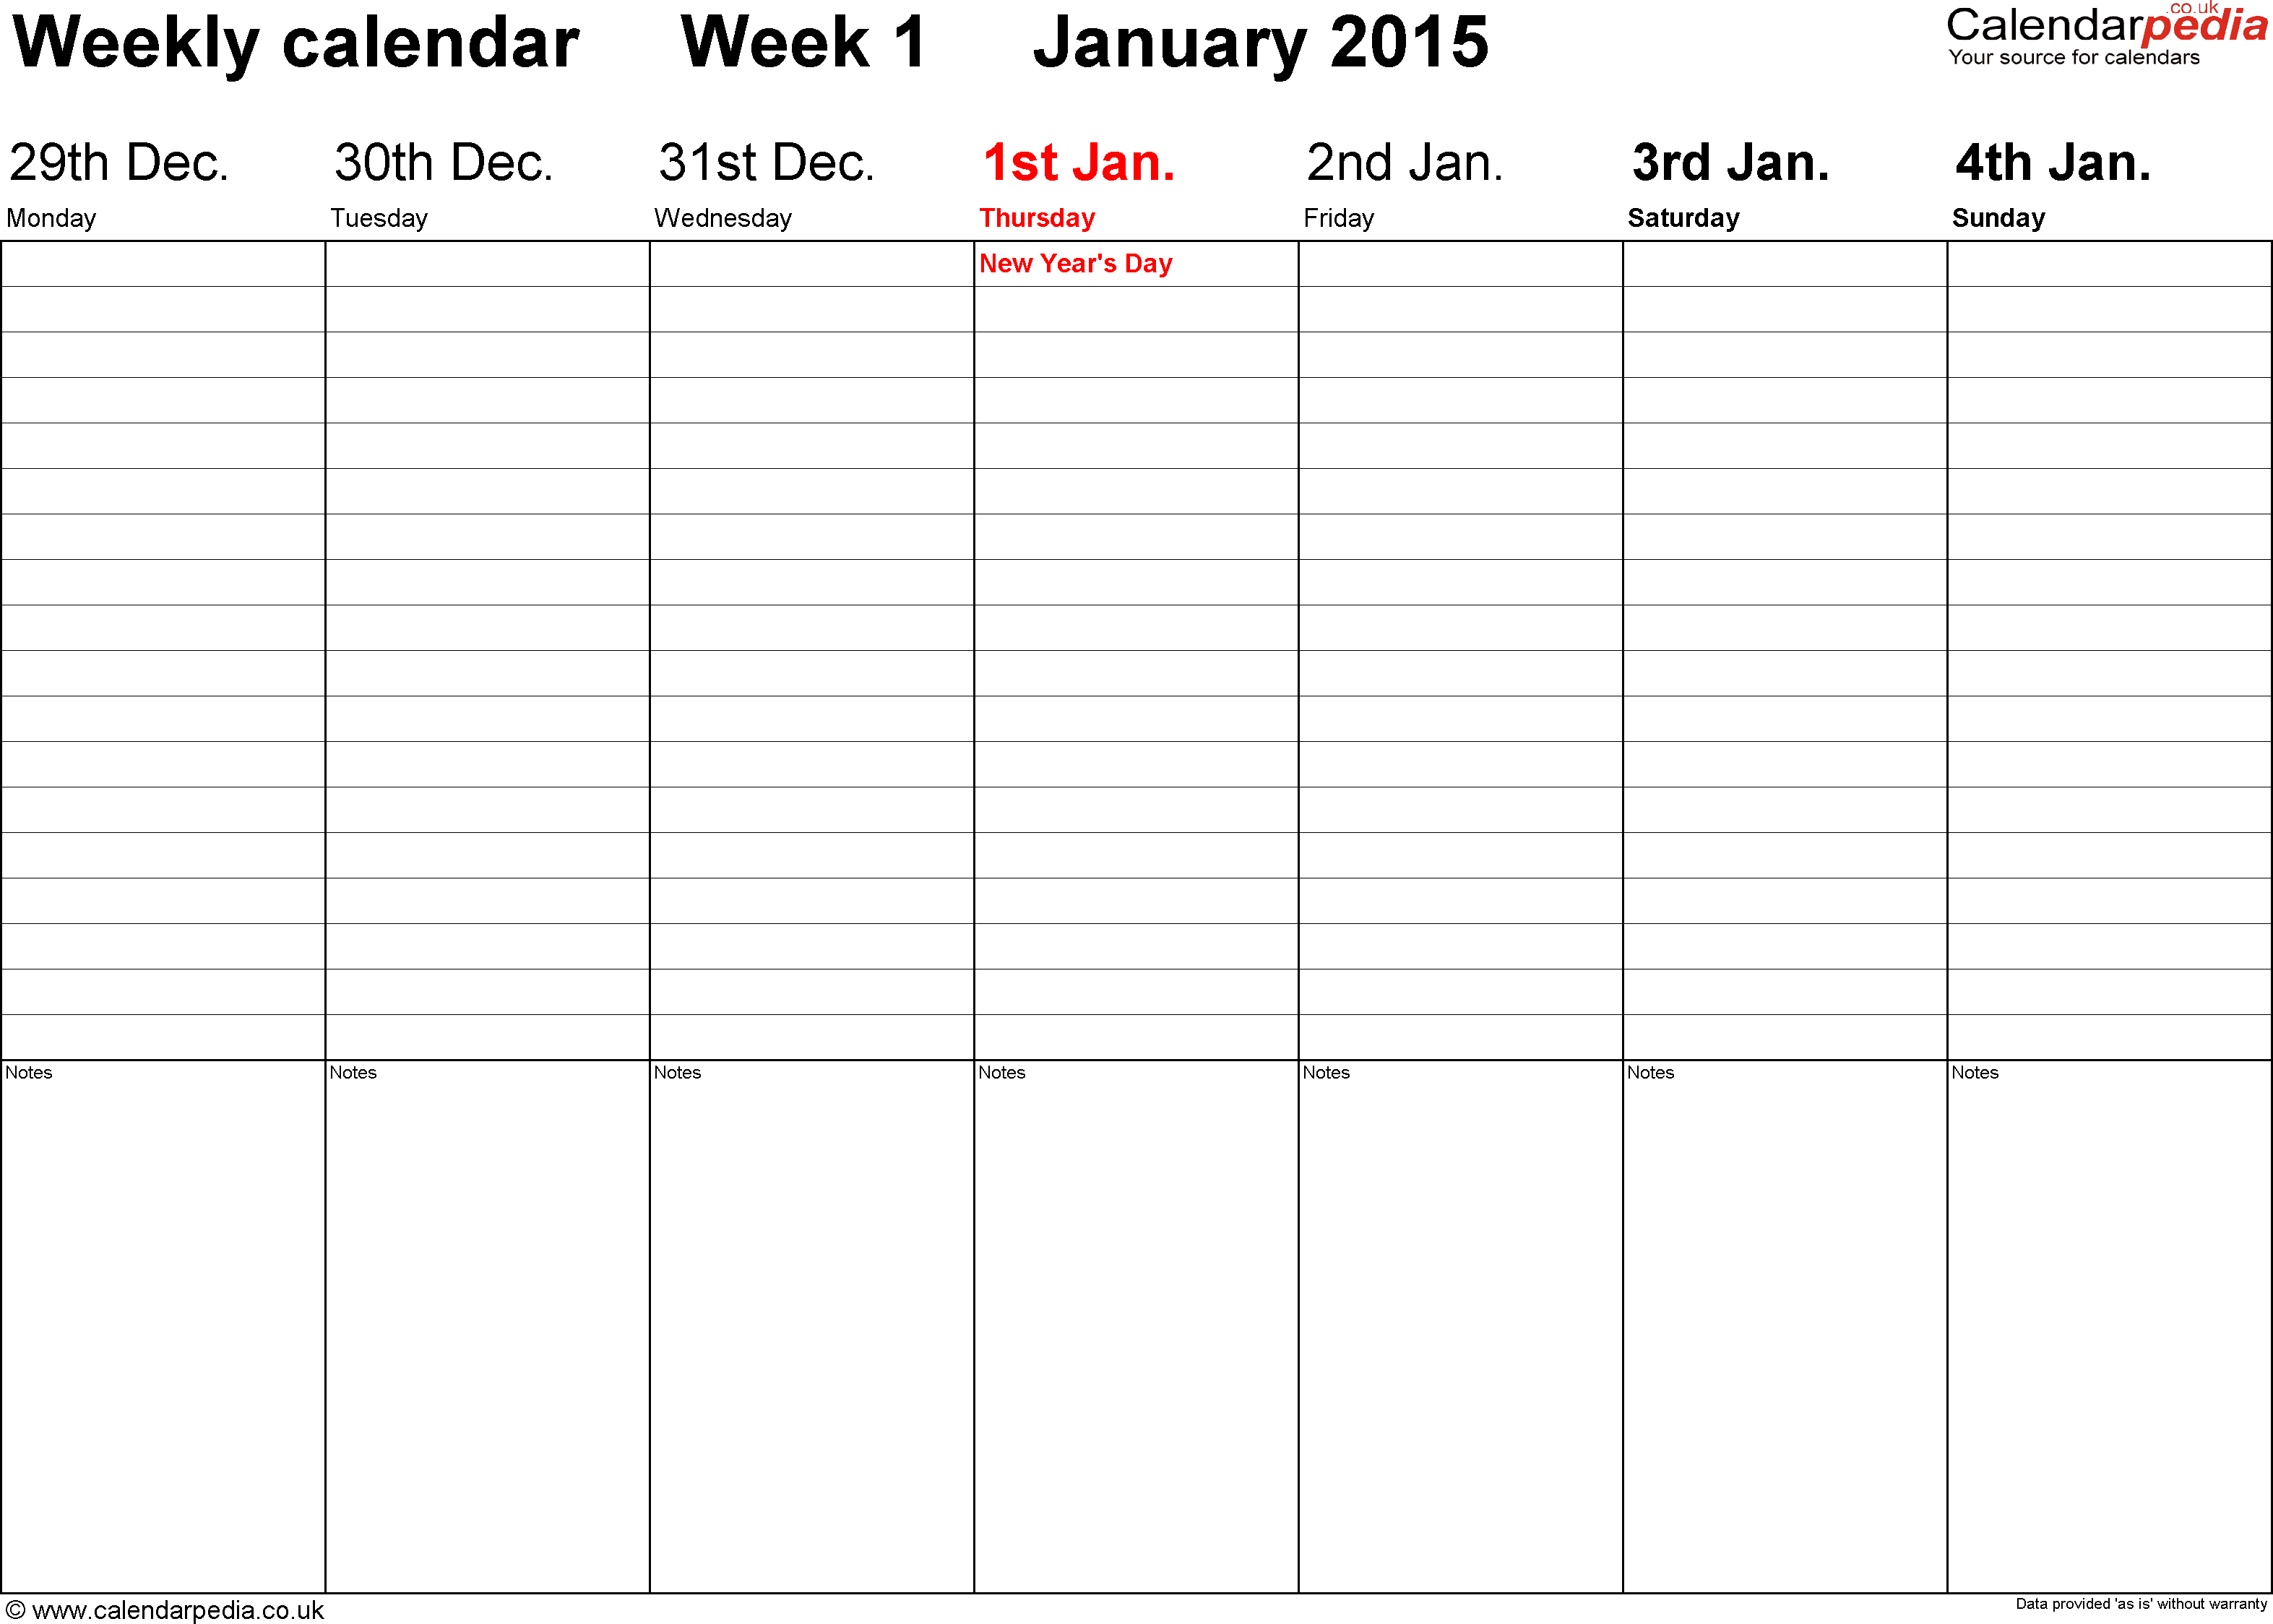 Calendar View Templates : Weekly calendar uk free printable templates for pdf